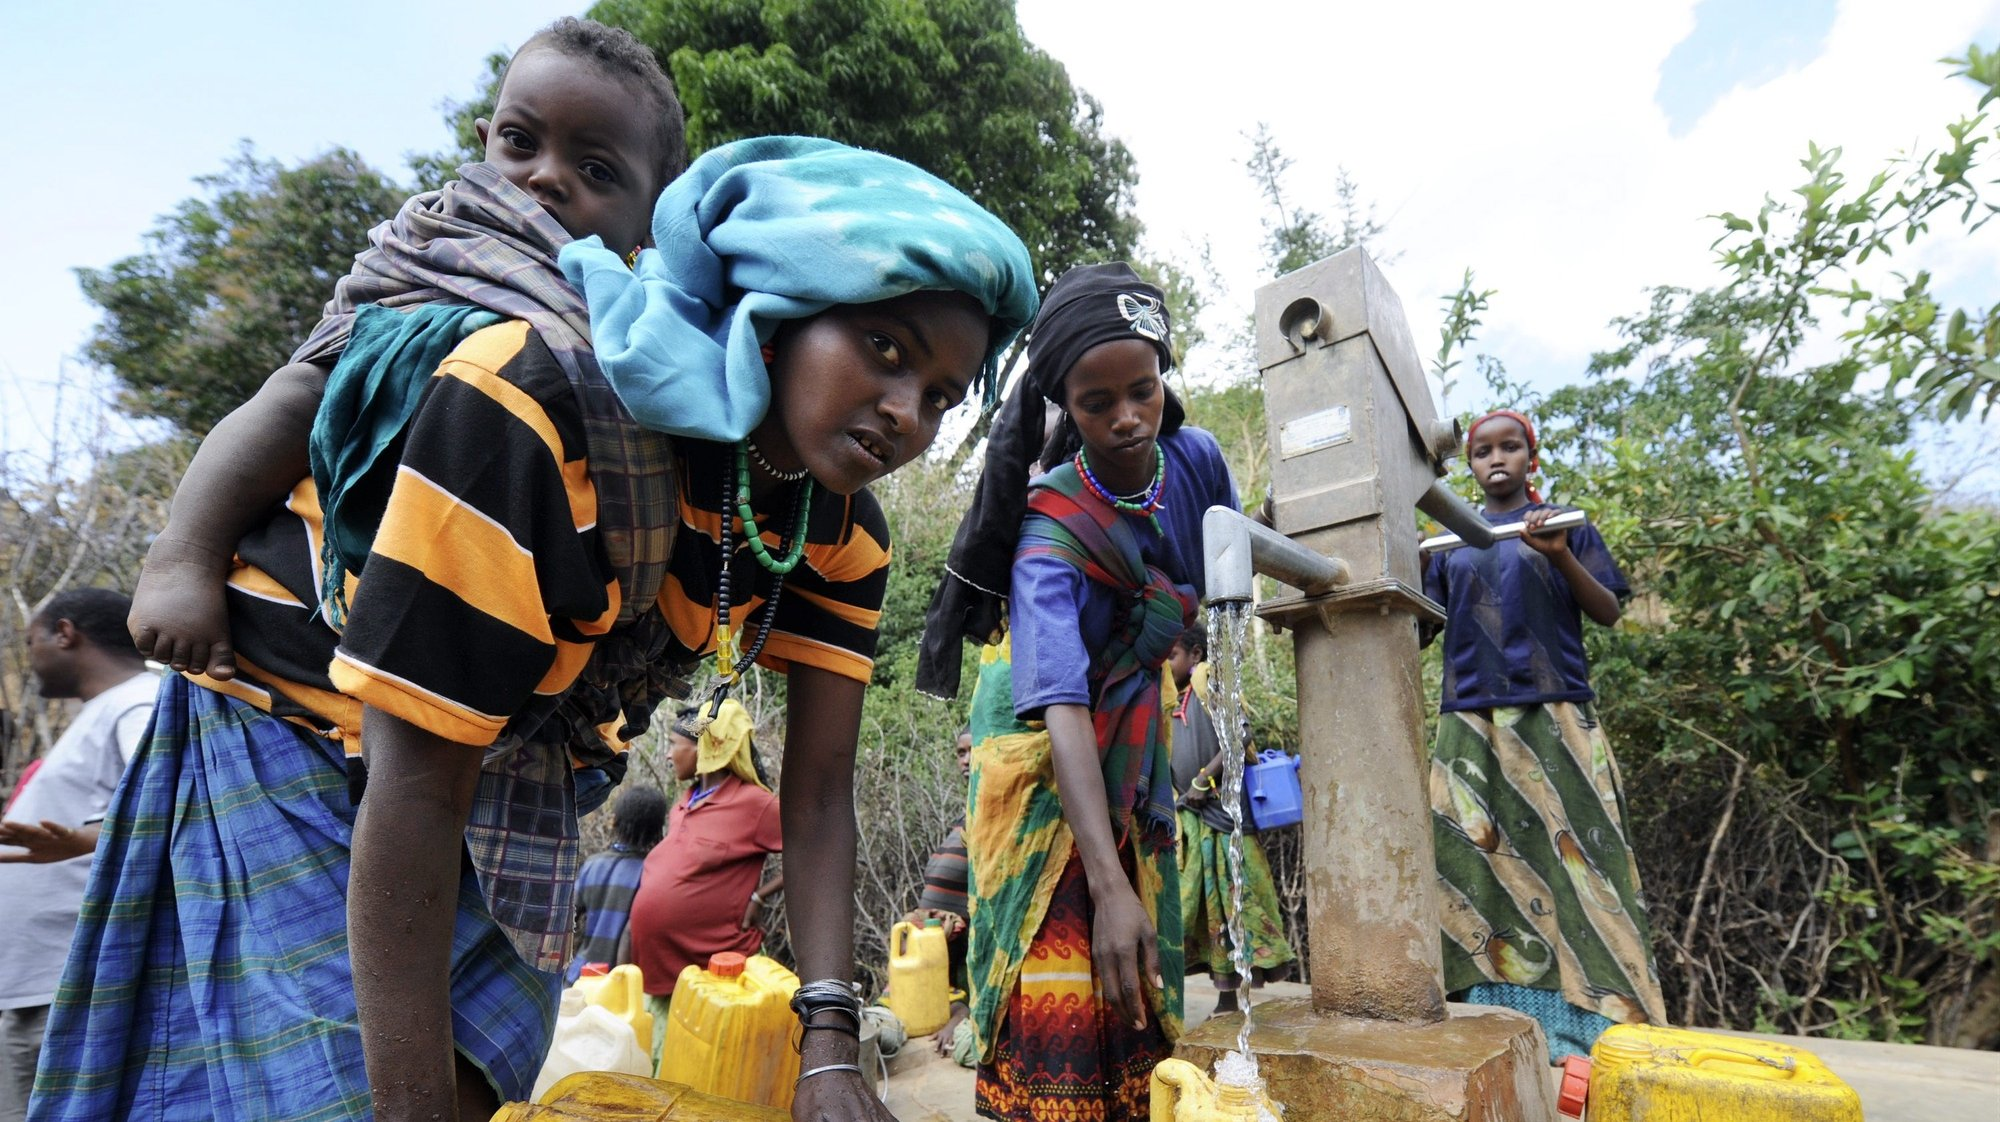 epa02527749 A picture made available 13 January 2011 shows women fetching water from a water hole drilled by human aid foundation 'Menschen fuer Menschen' in Babile, Ethiopia, 12 January 2011. TheAustrian charity organisation  'Menschen fuer Menschen' (lit. 'people for people') is active here, helping with water supply, finanicial and educational measures.  EPA/TOBIAS HASE